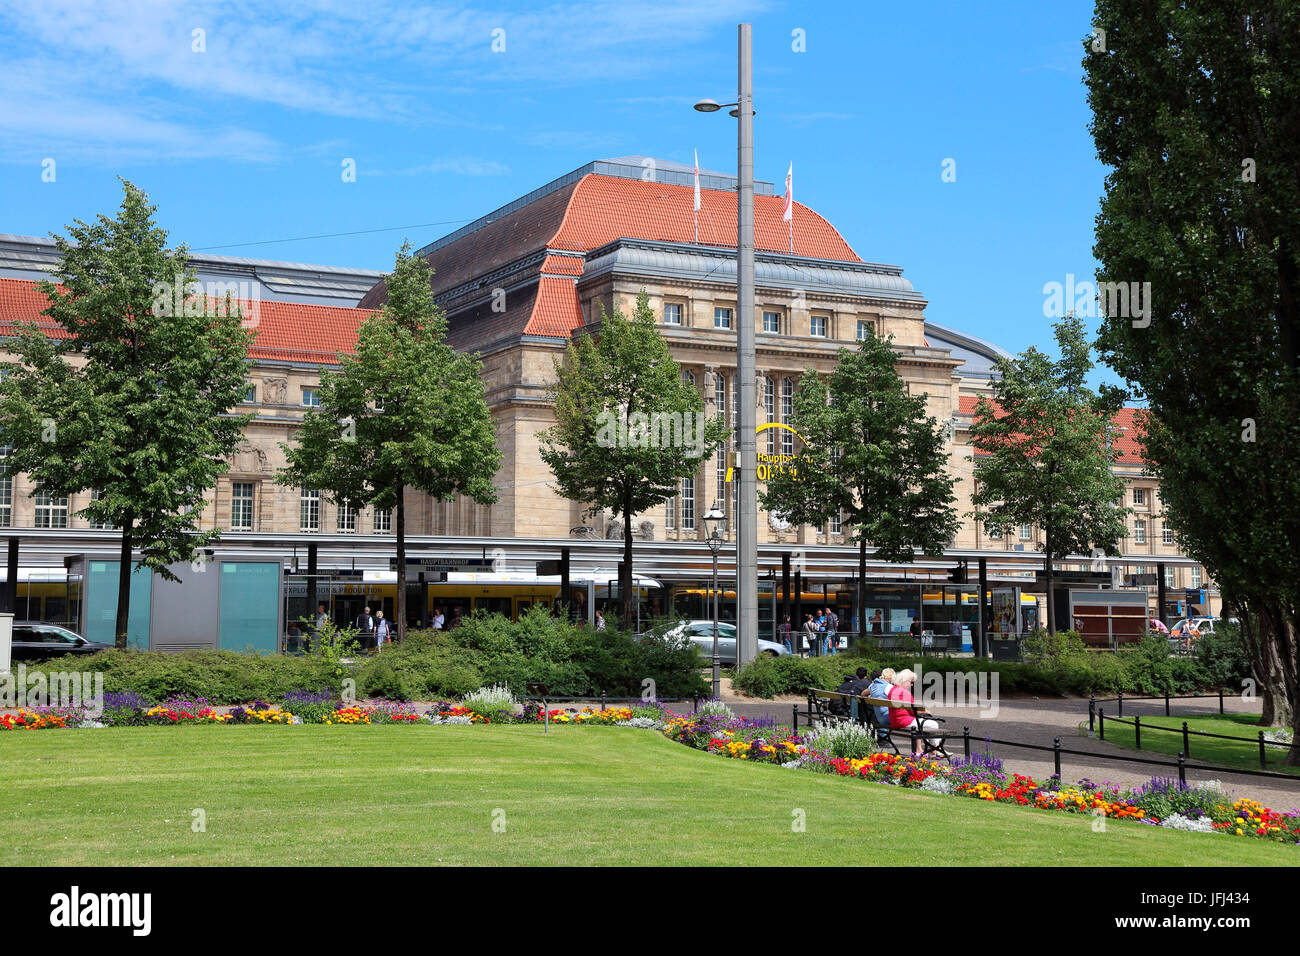 Leipzig central station promenades - Stock Image